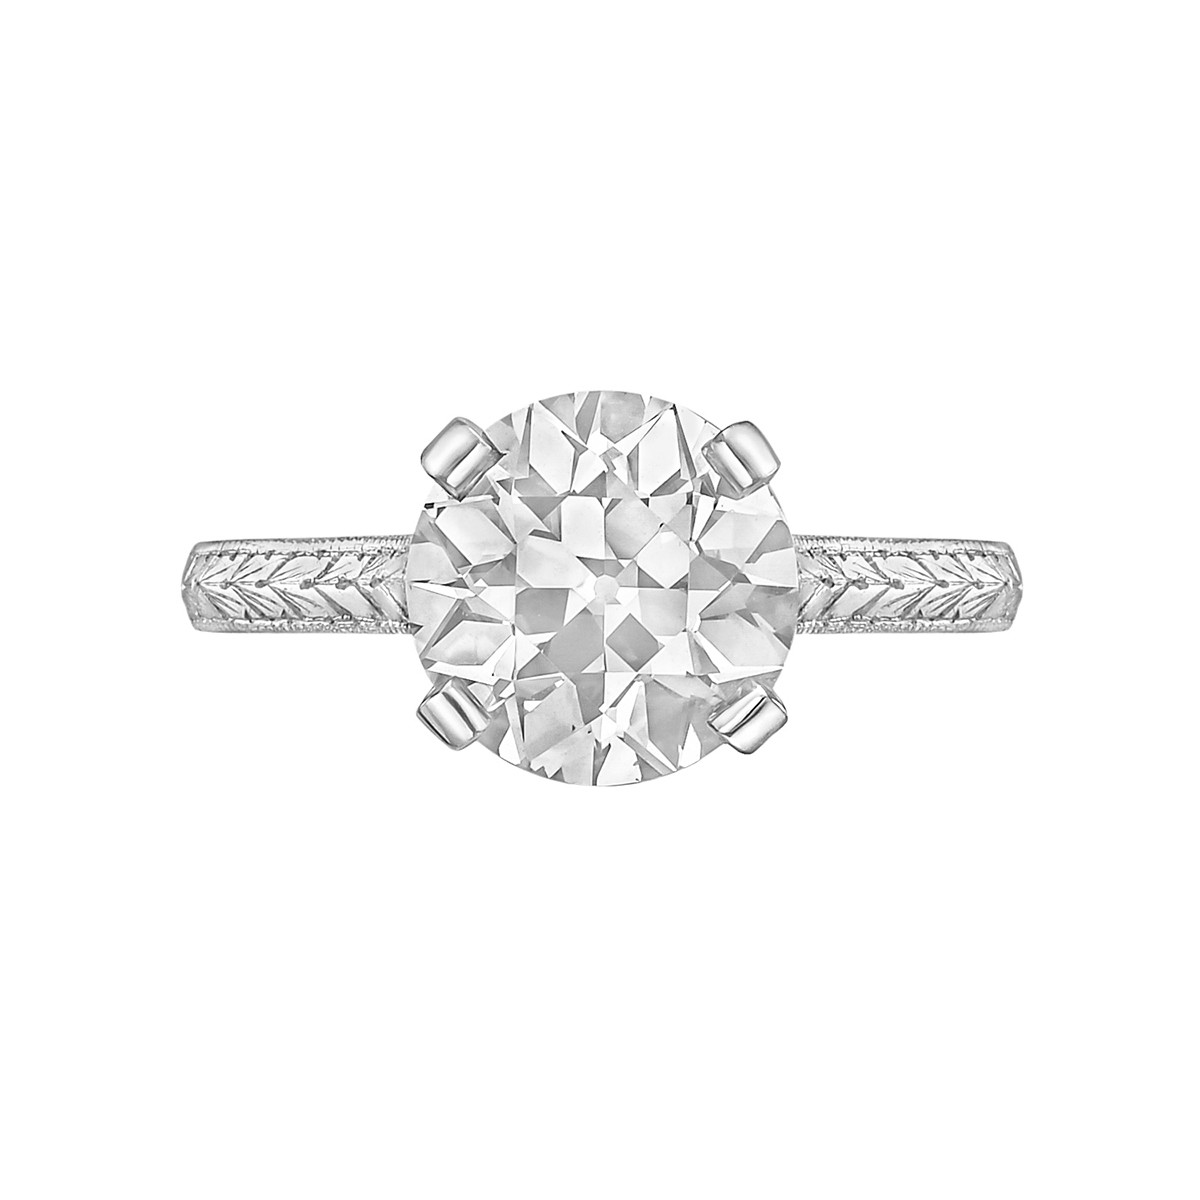 2.54ct Old European-Cut Diamond Ring